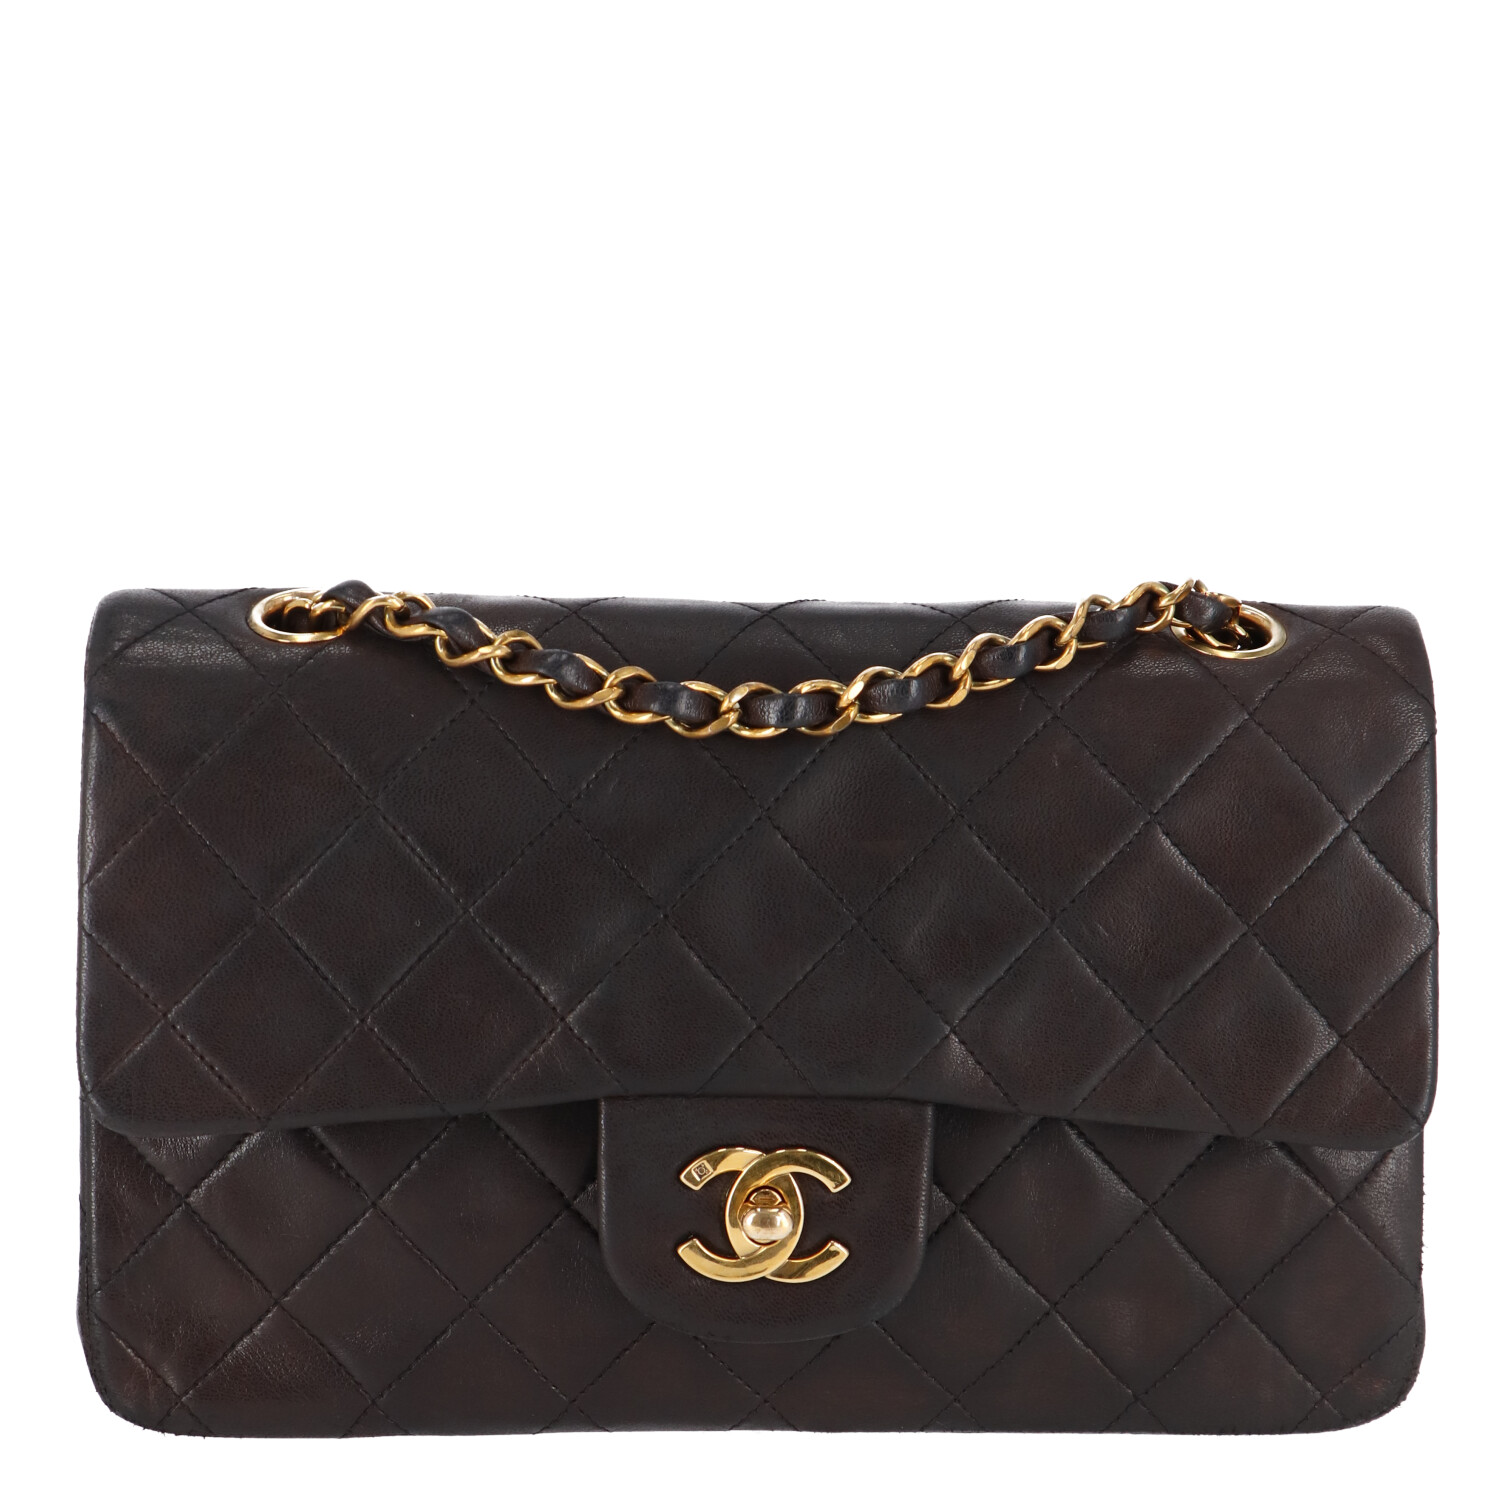 Chanel Brown Small Lambskin Classic Double Flap Bag